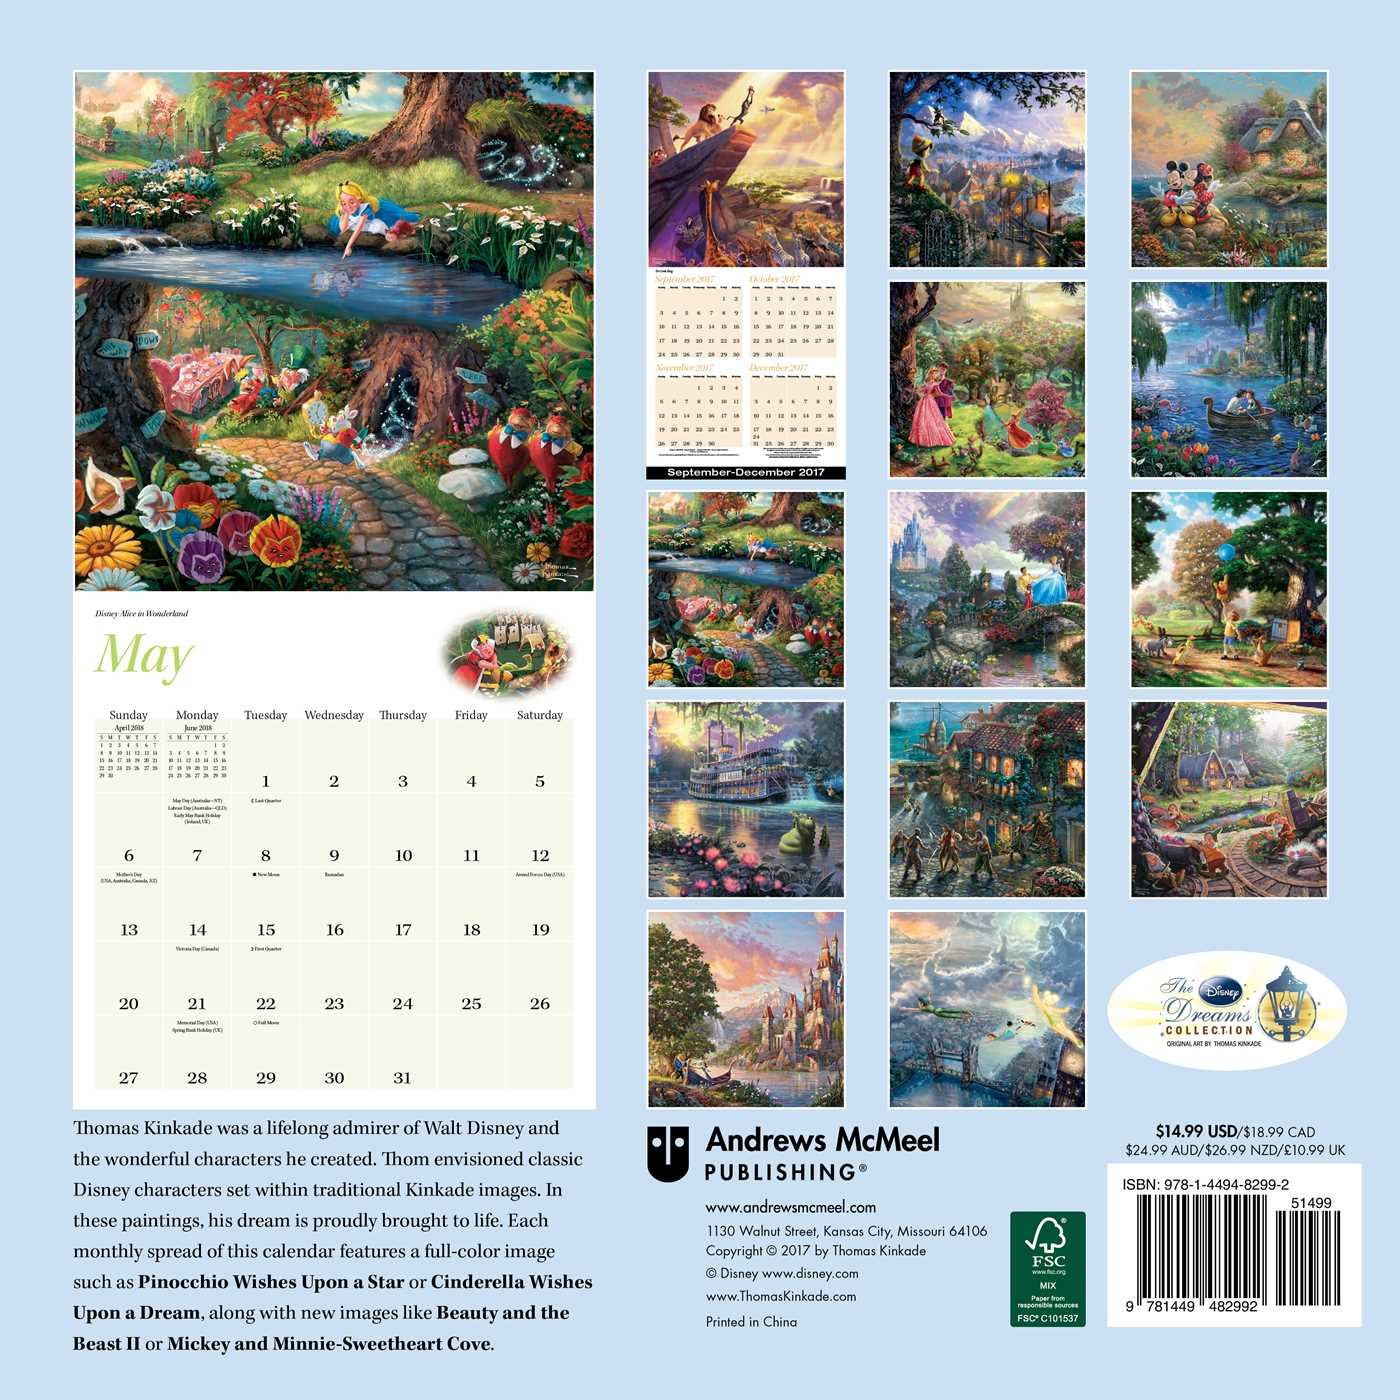 Amazon.com: Thomas Kinkade: The Disney Dreams Collection 2018 Wall